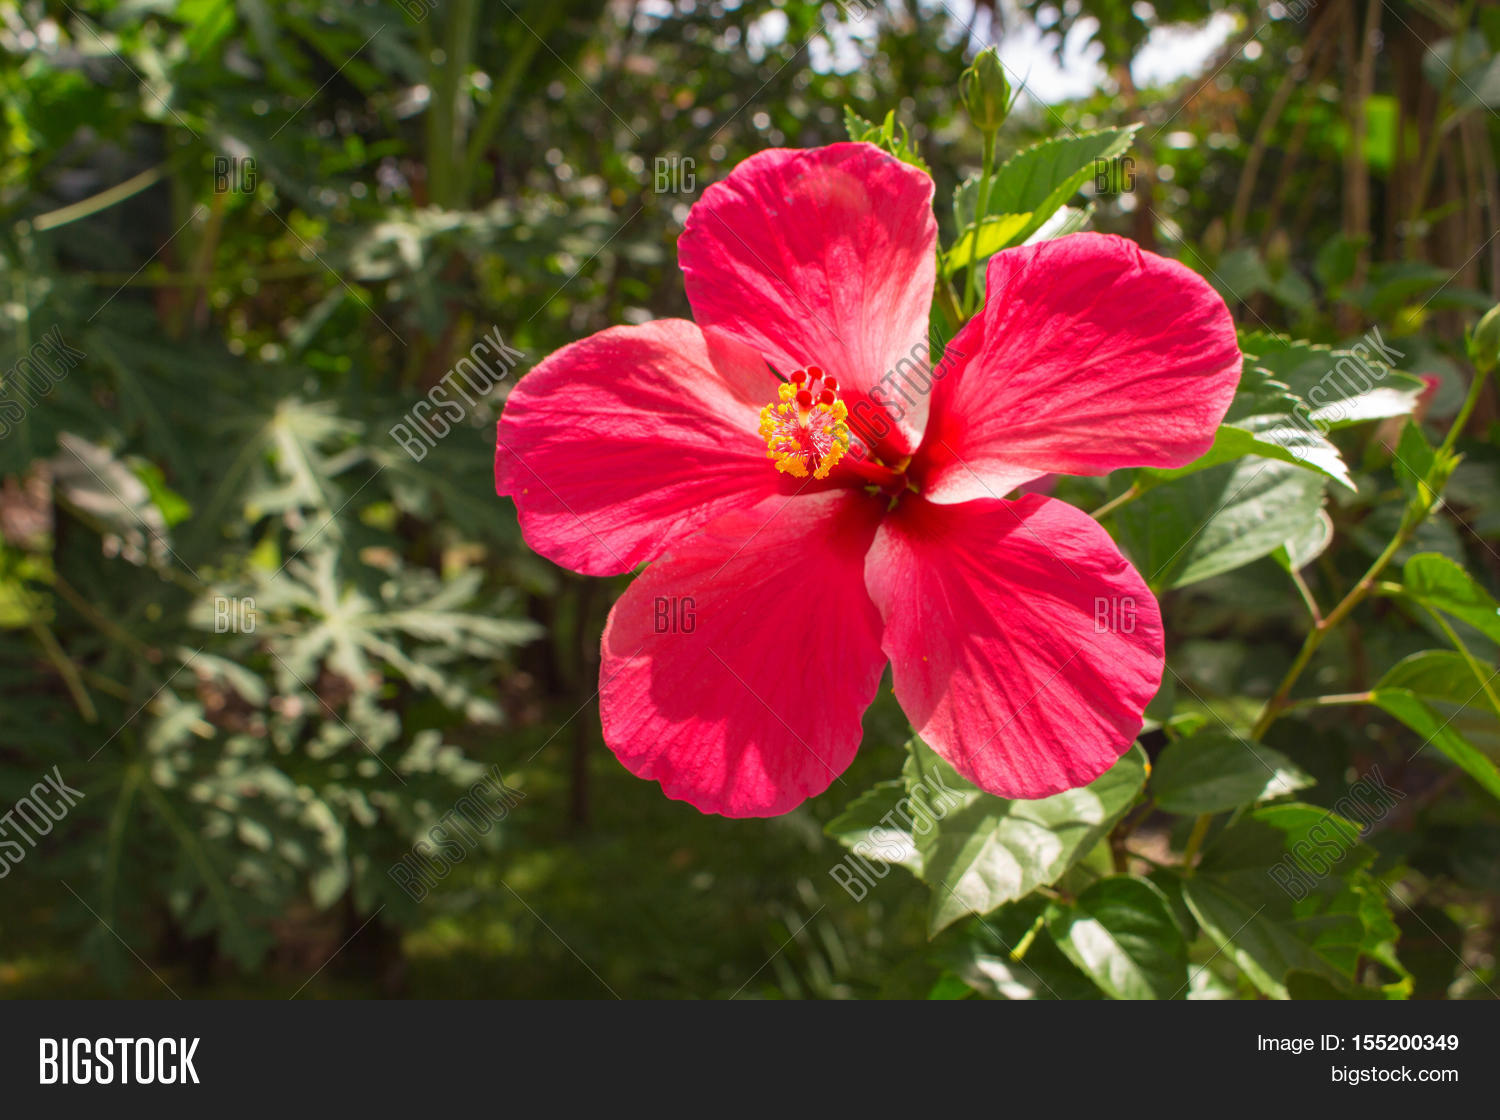 Pink flower on tropical background image photo bigstock pink flower on tropical background bright hibiscus flower on the branch with fresh green leaves izmirmasajfo Choice Image